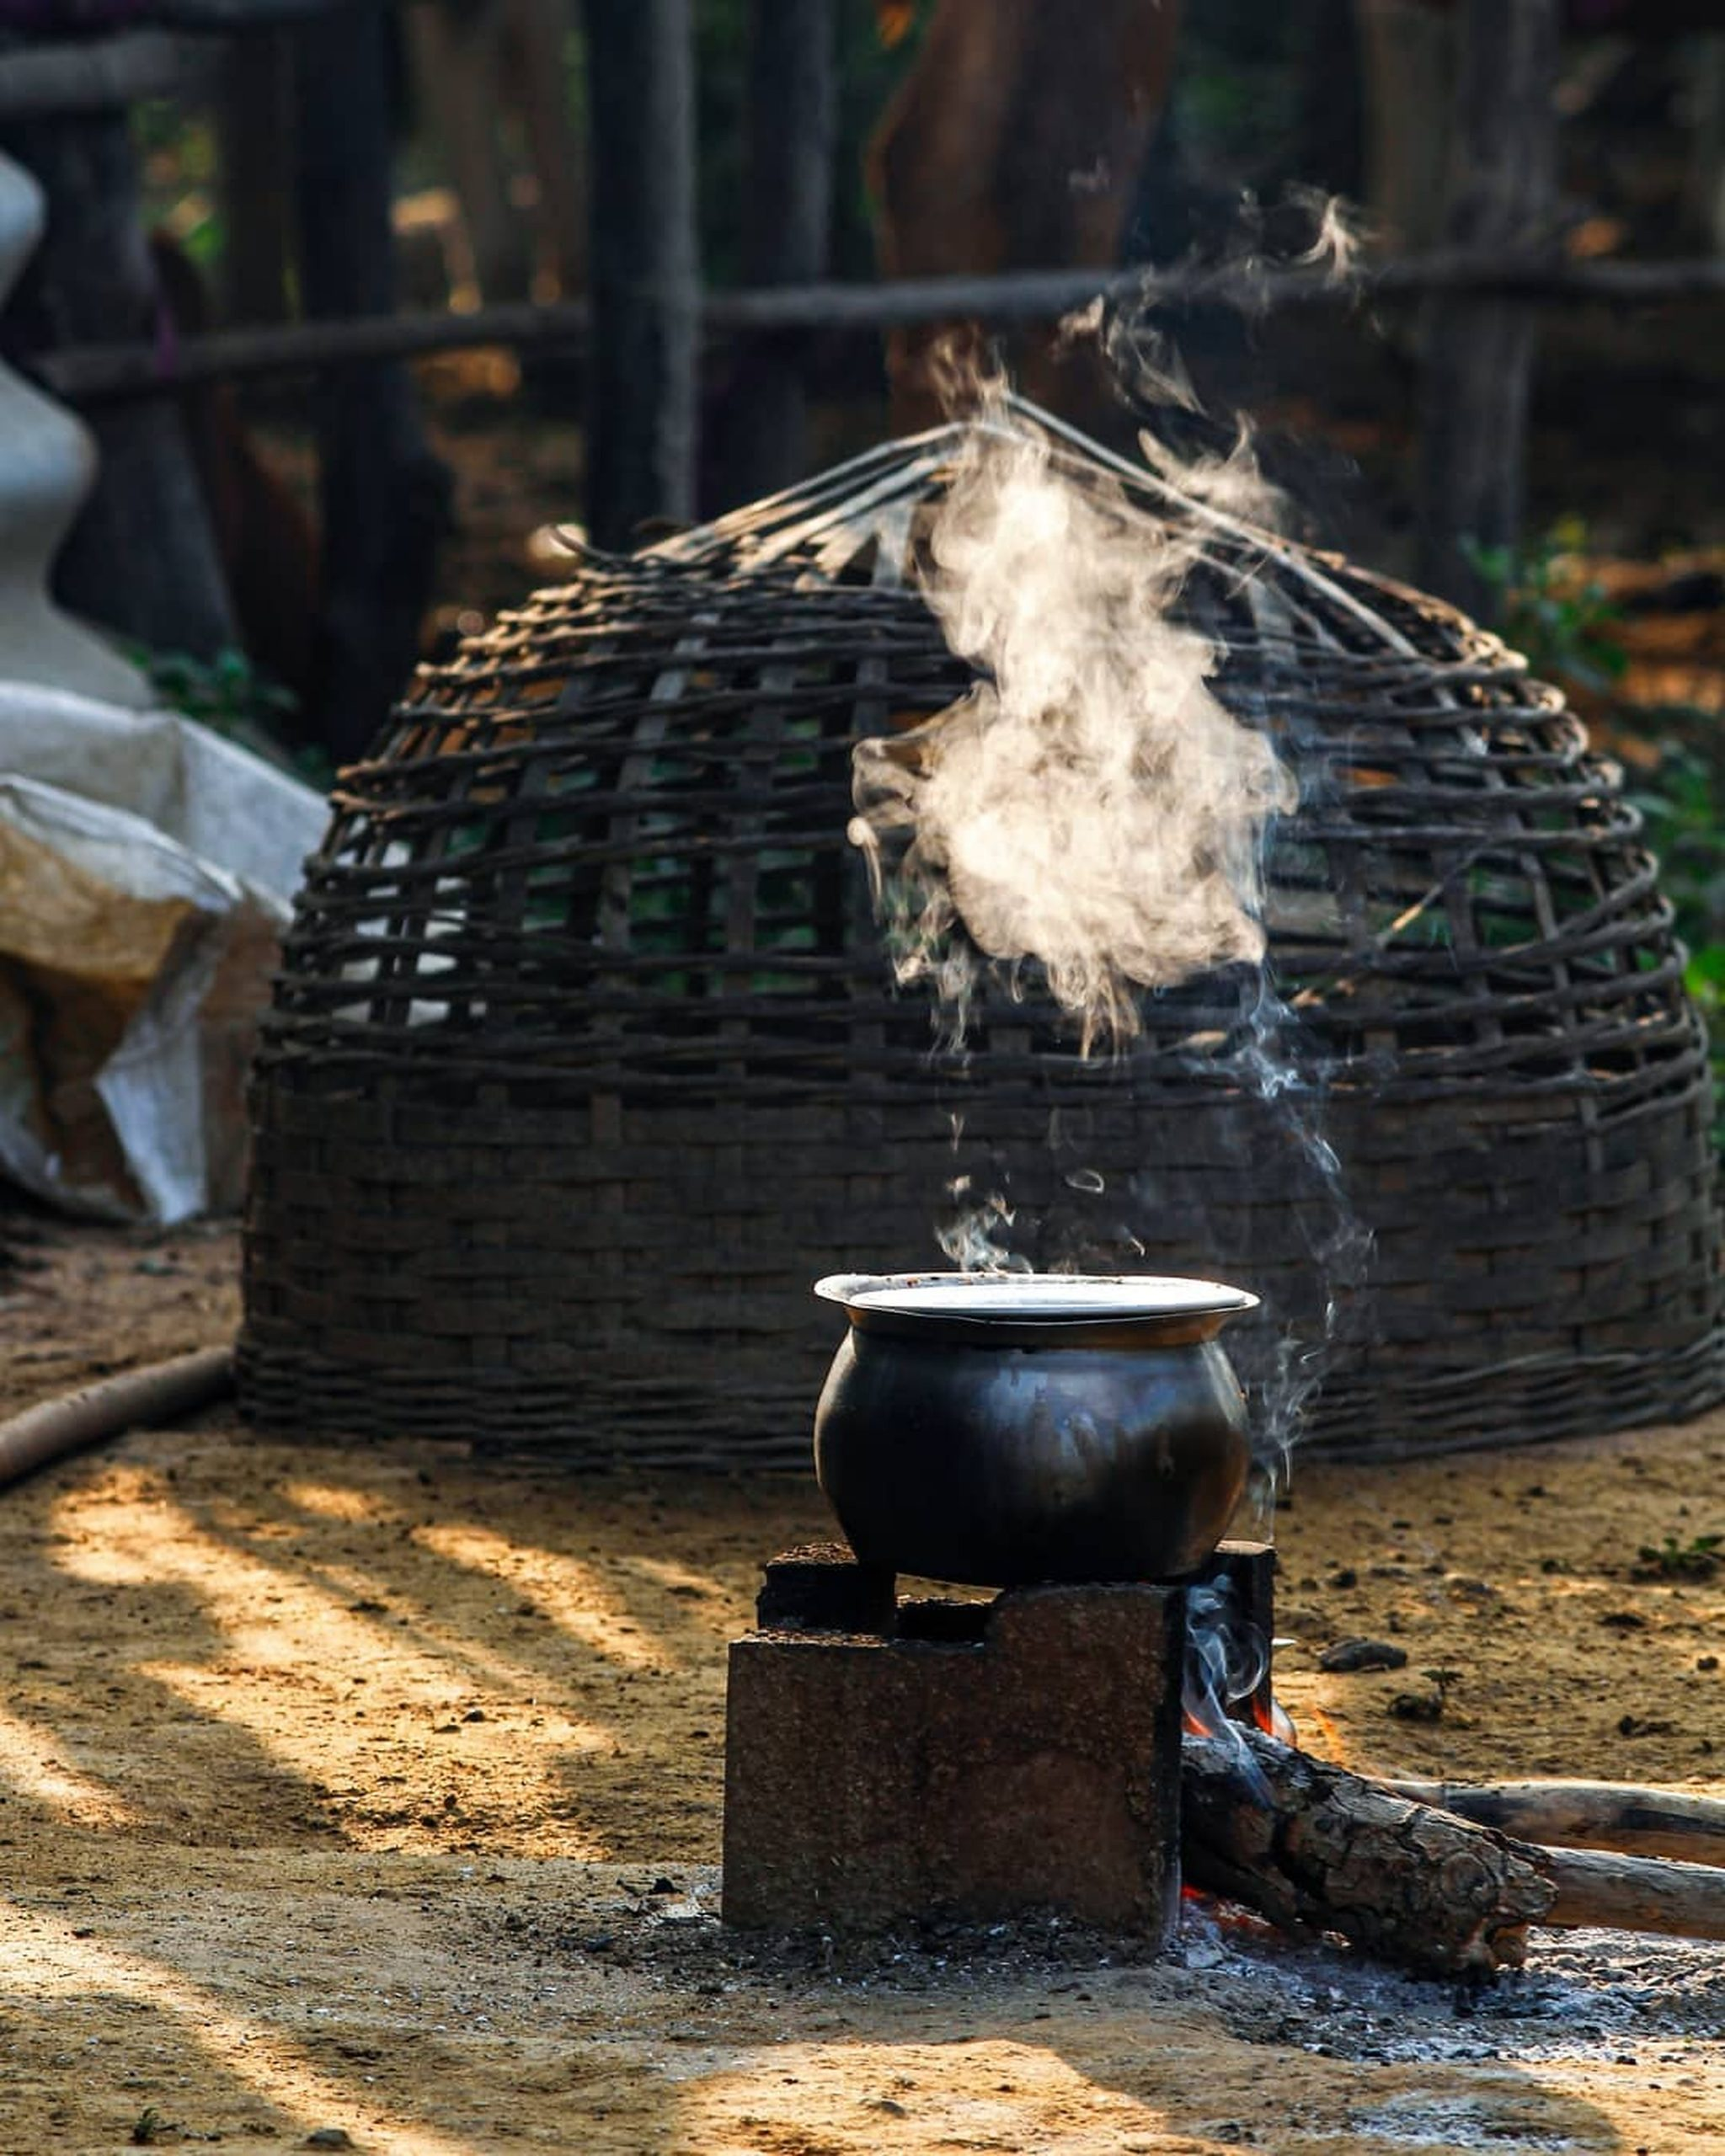 Clay stove in a village